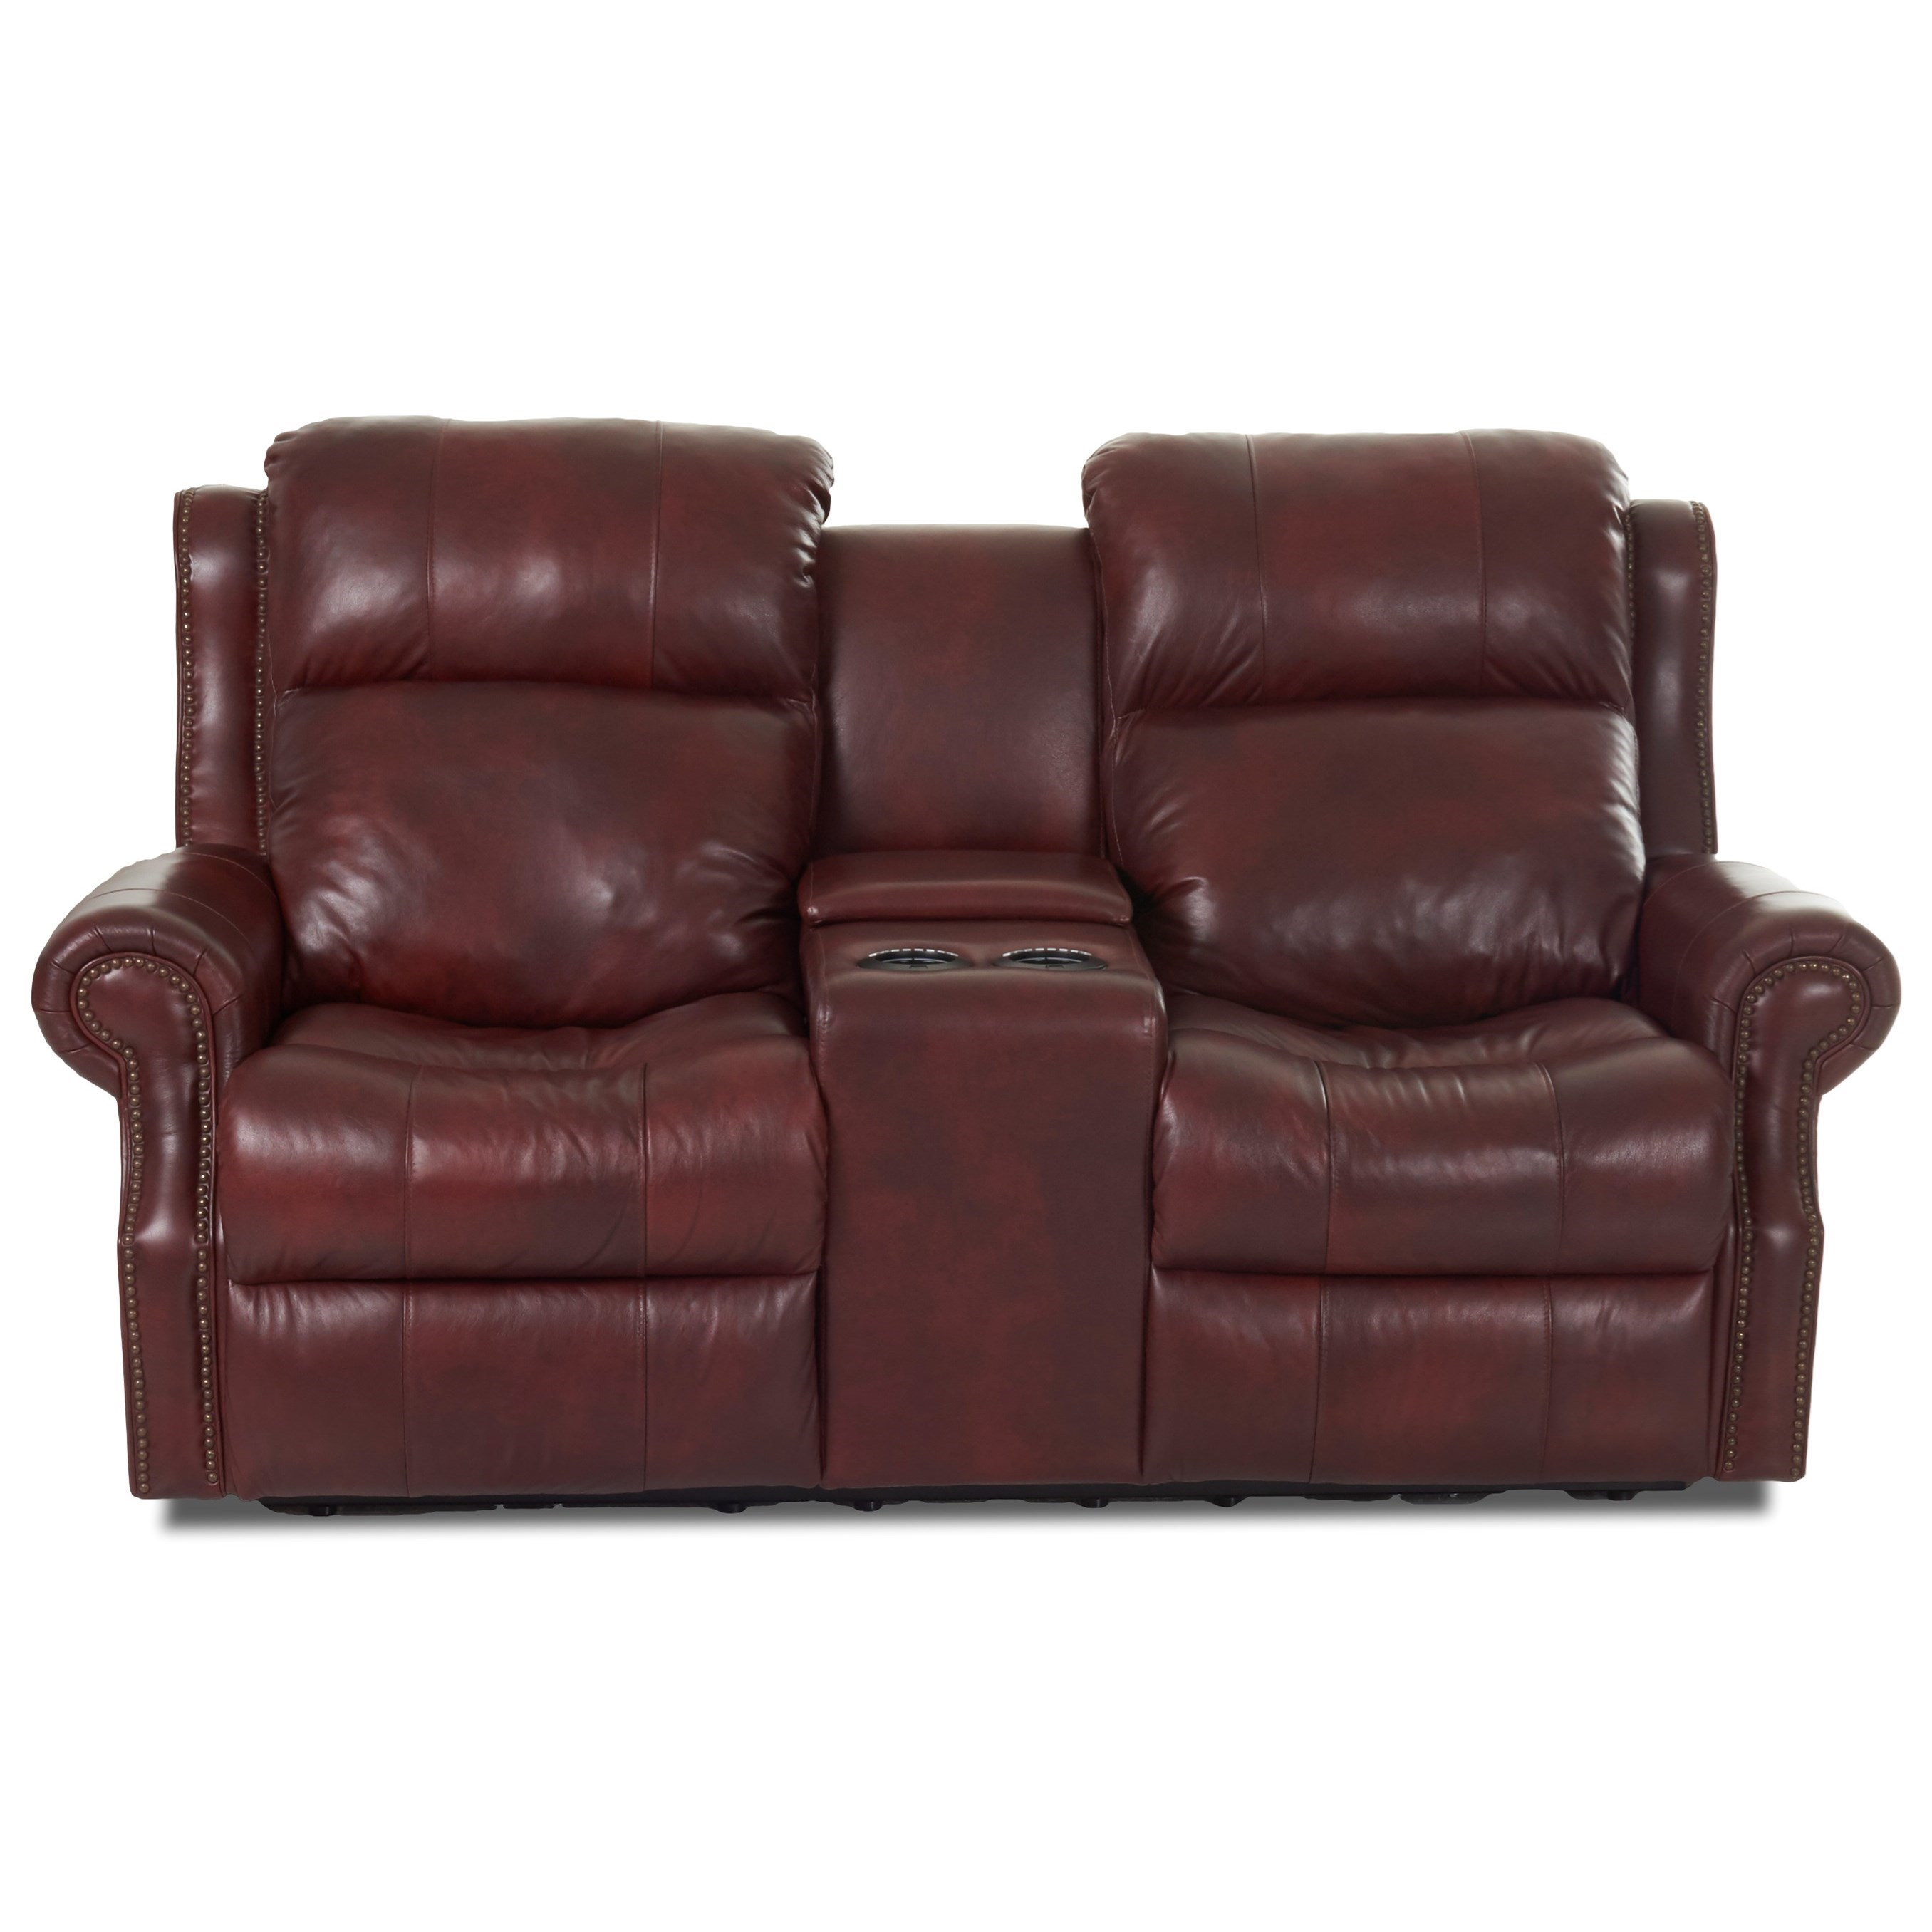 Traditional Power Reclining Console Loveseat with Power Headrests and USB Ports